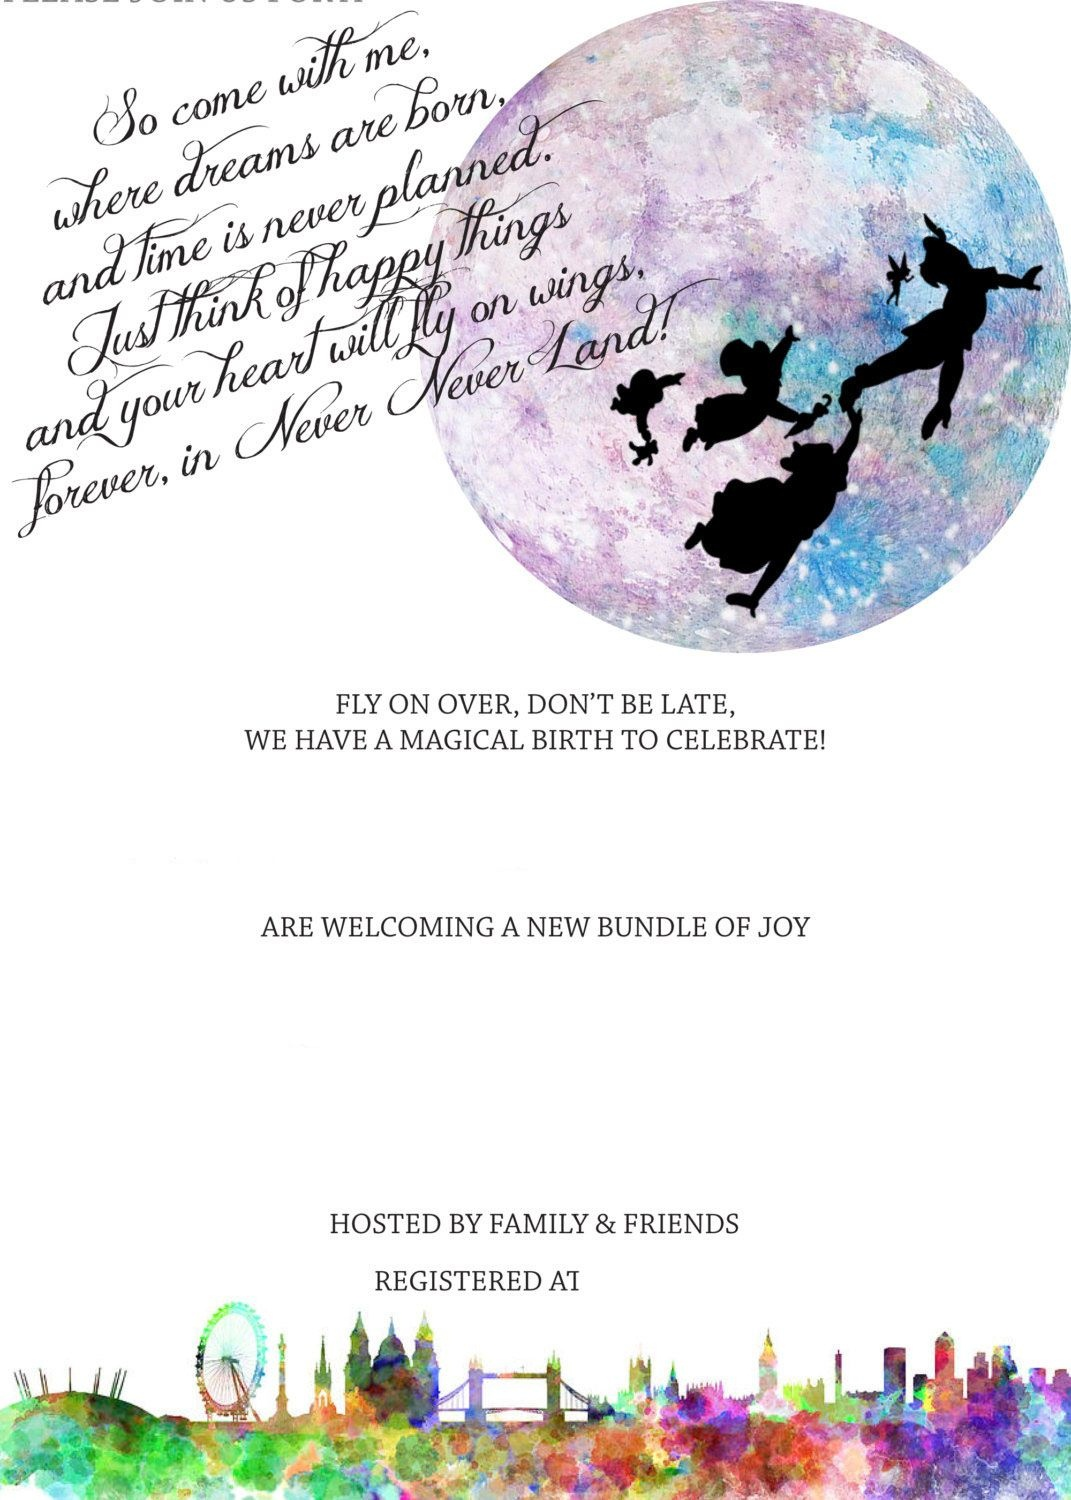 Free Peterpan In Neverland Baby Shower   Free Printable Birthday - Free Printable Tinkerbell Baby Shower Invitations